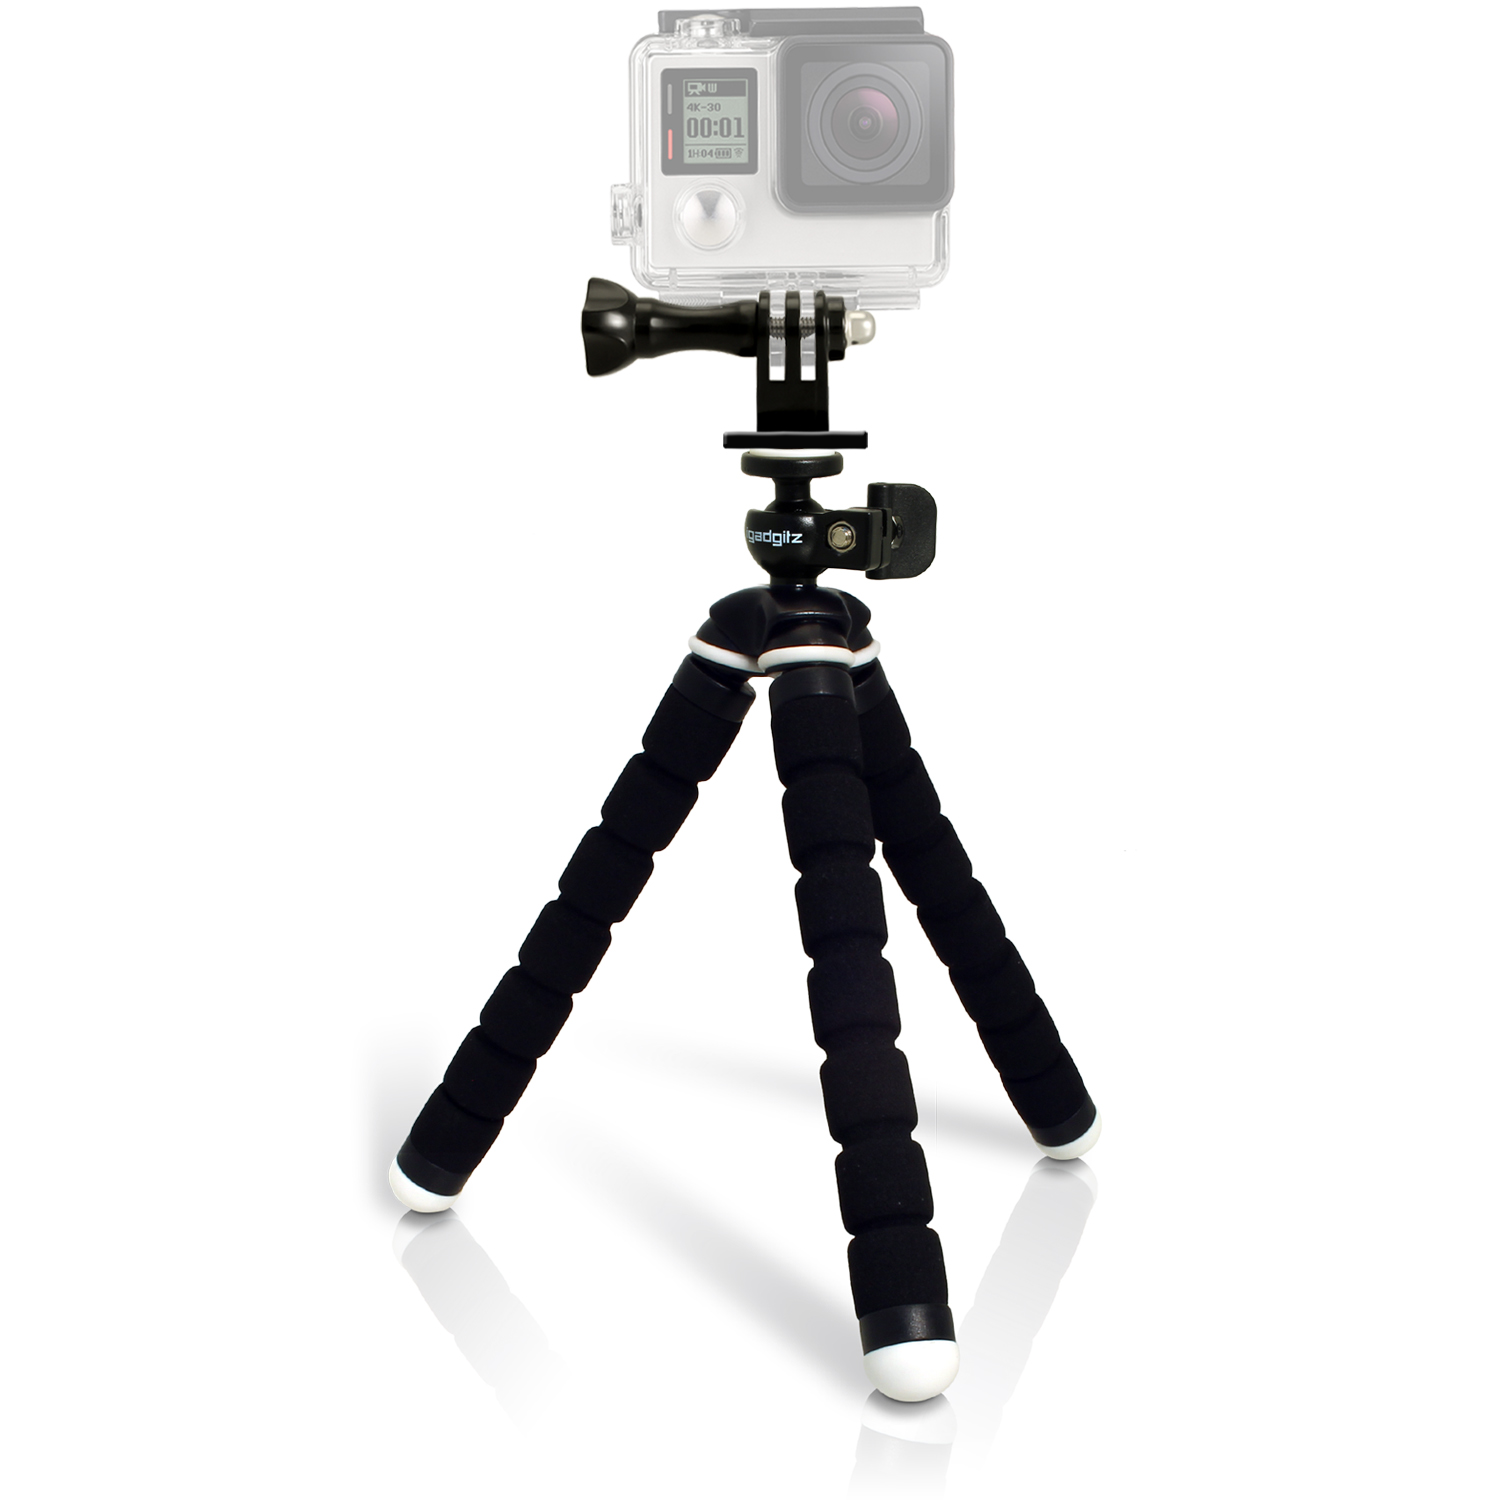 hama traveller compact pro tripod instructions